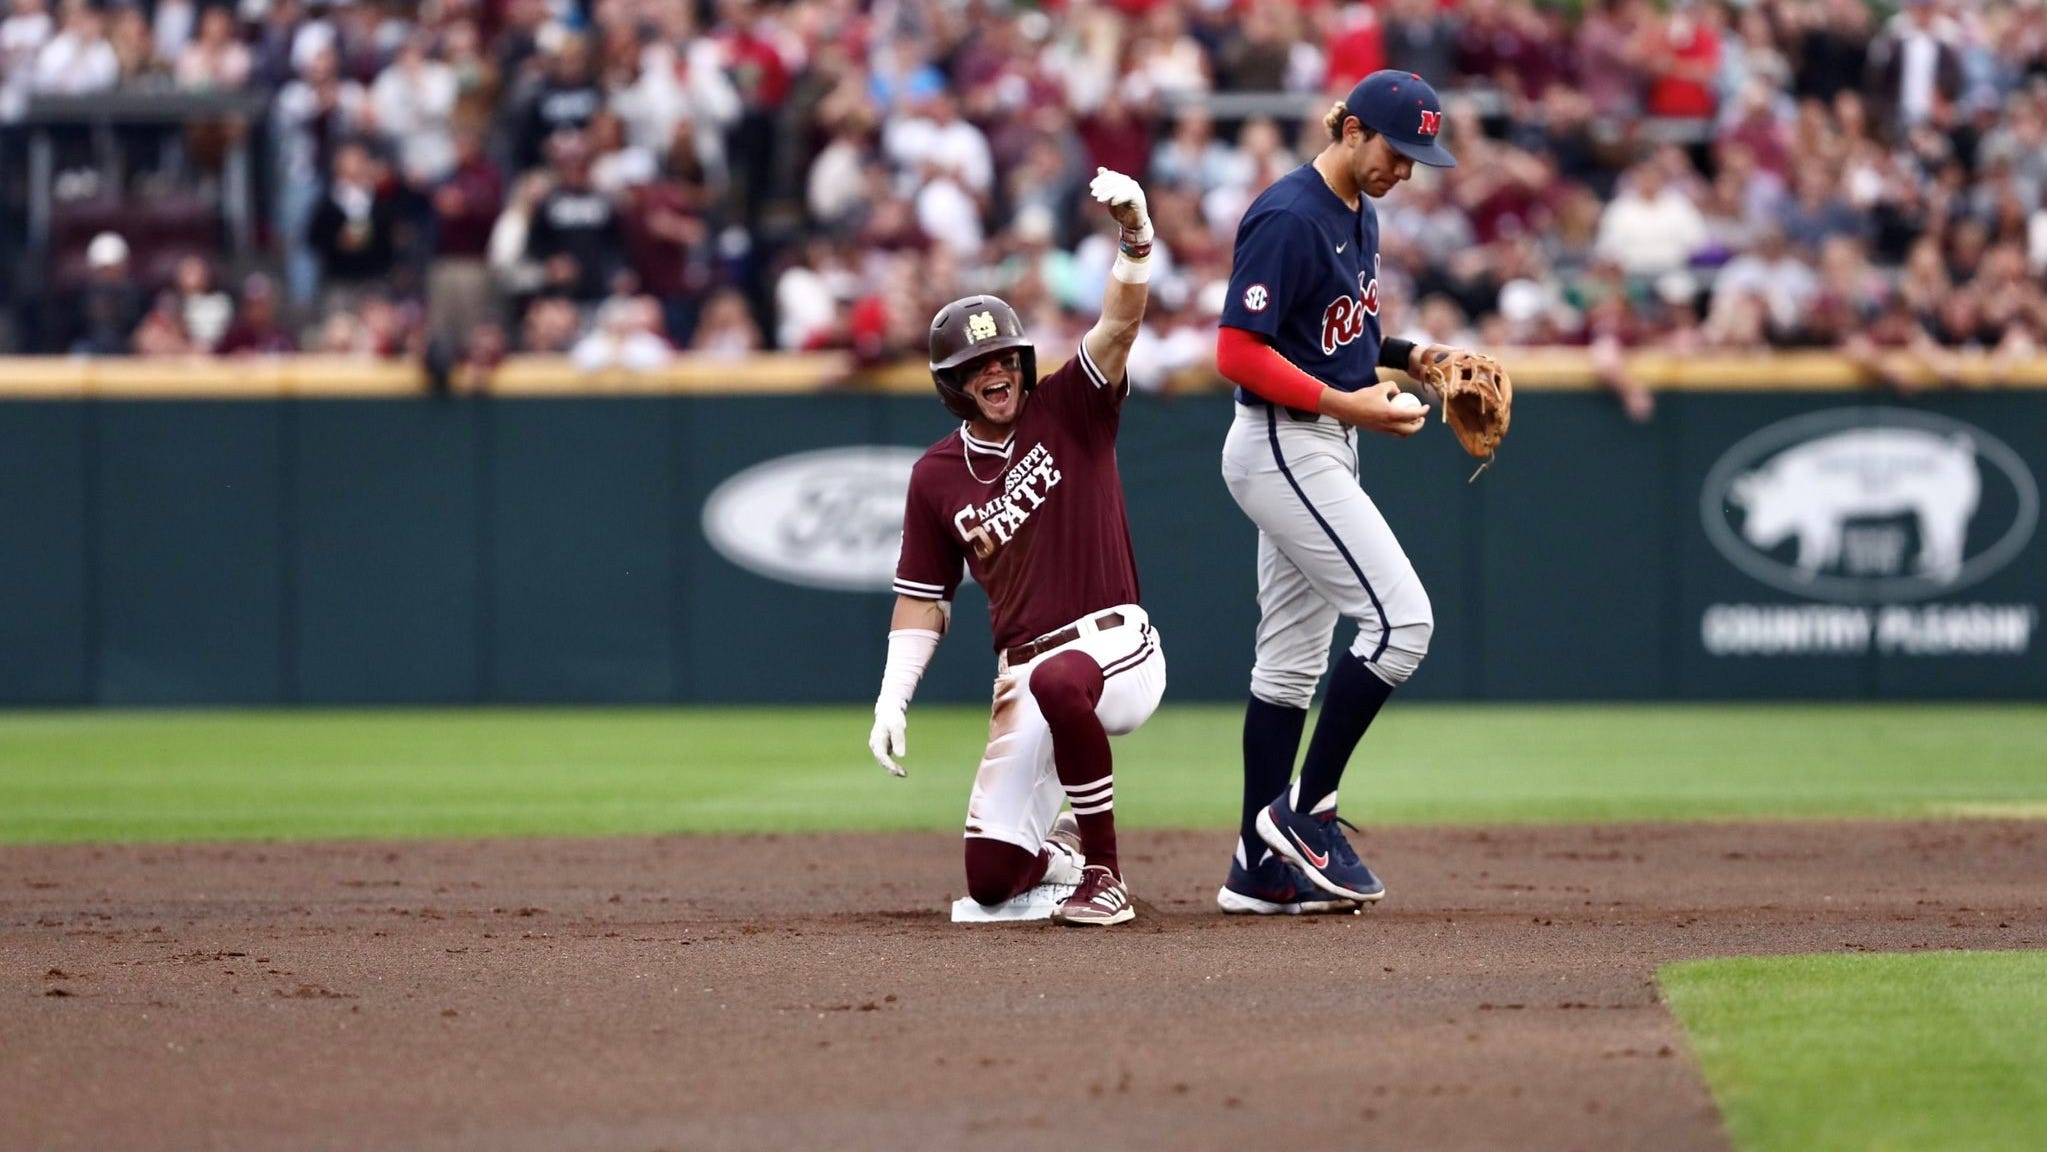 MSU baseball beats Ole Miss in series opener